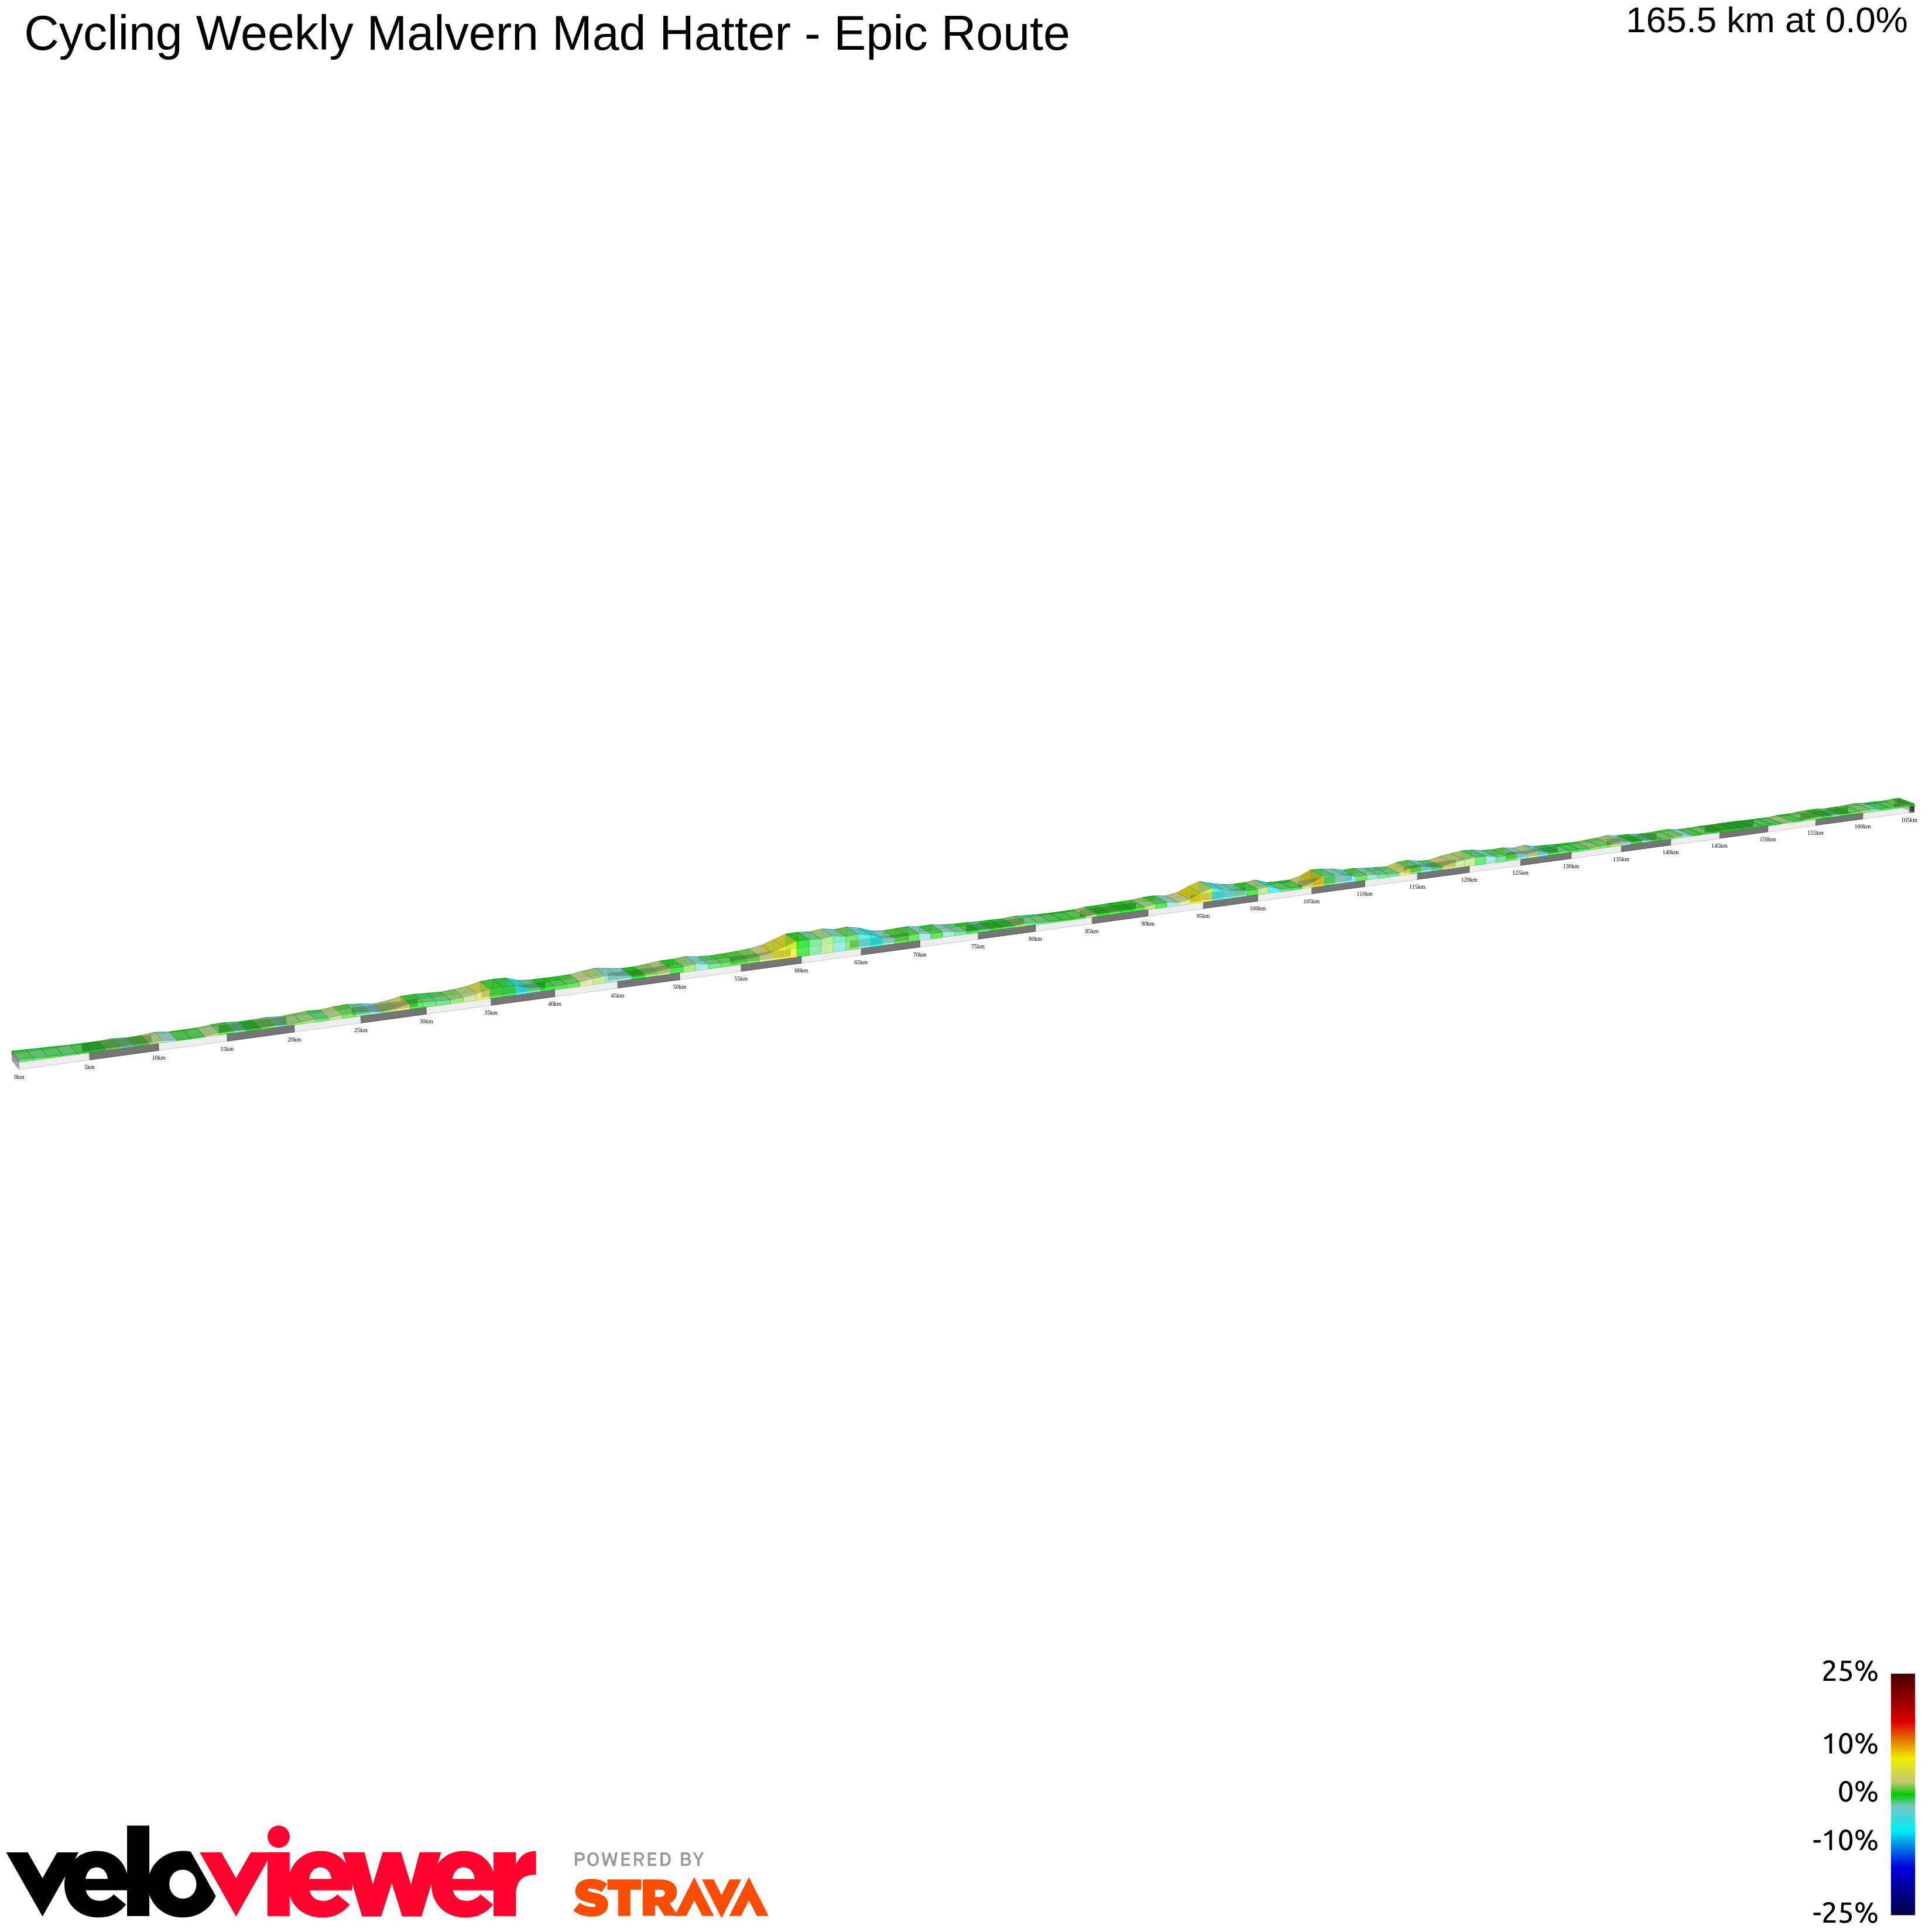 2D Elevation profile image for Cycling Weekly Malvern Mad Hatter - Epic Route